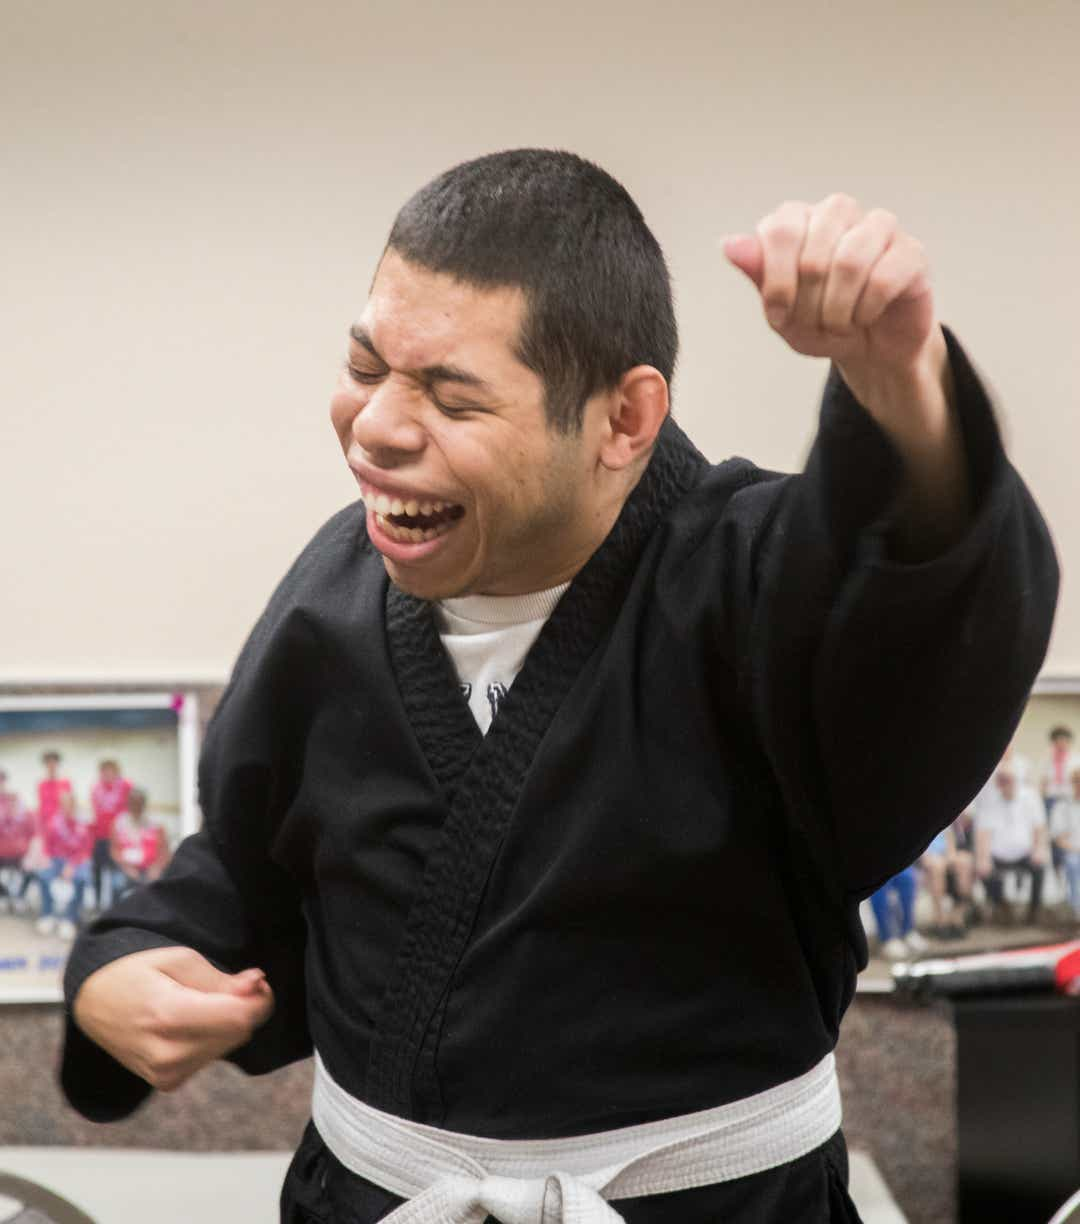 Jonathon Espejo practices Karate during a class at the Braille Institute in Rancho Mirage.